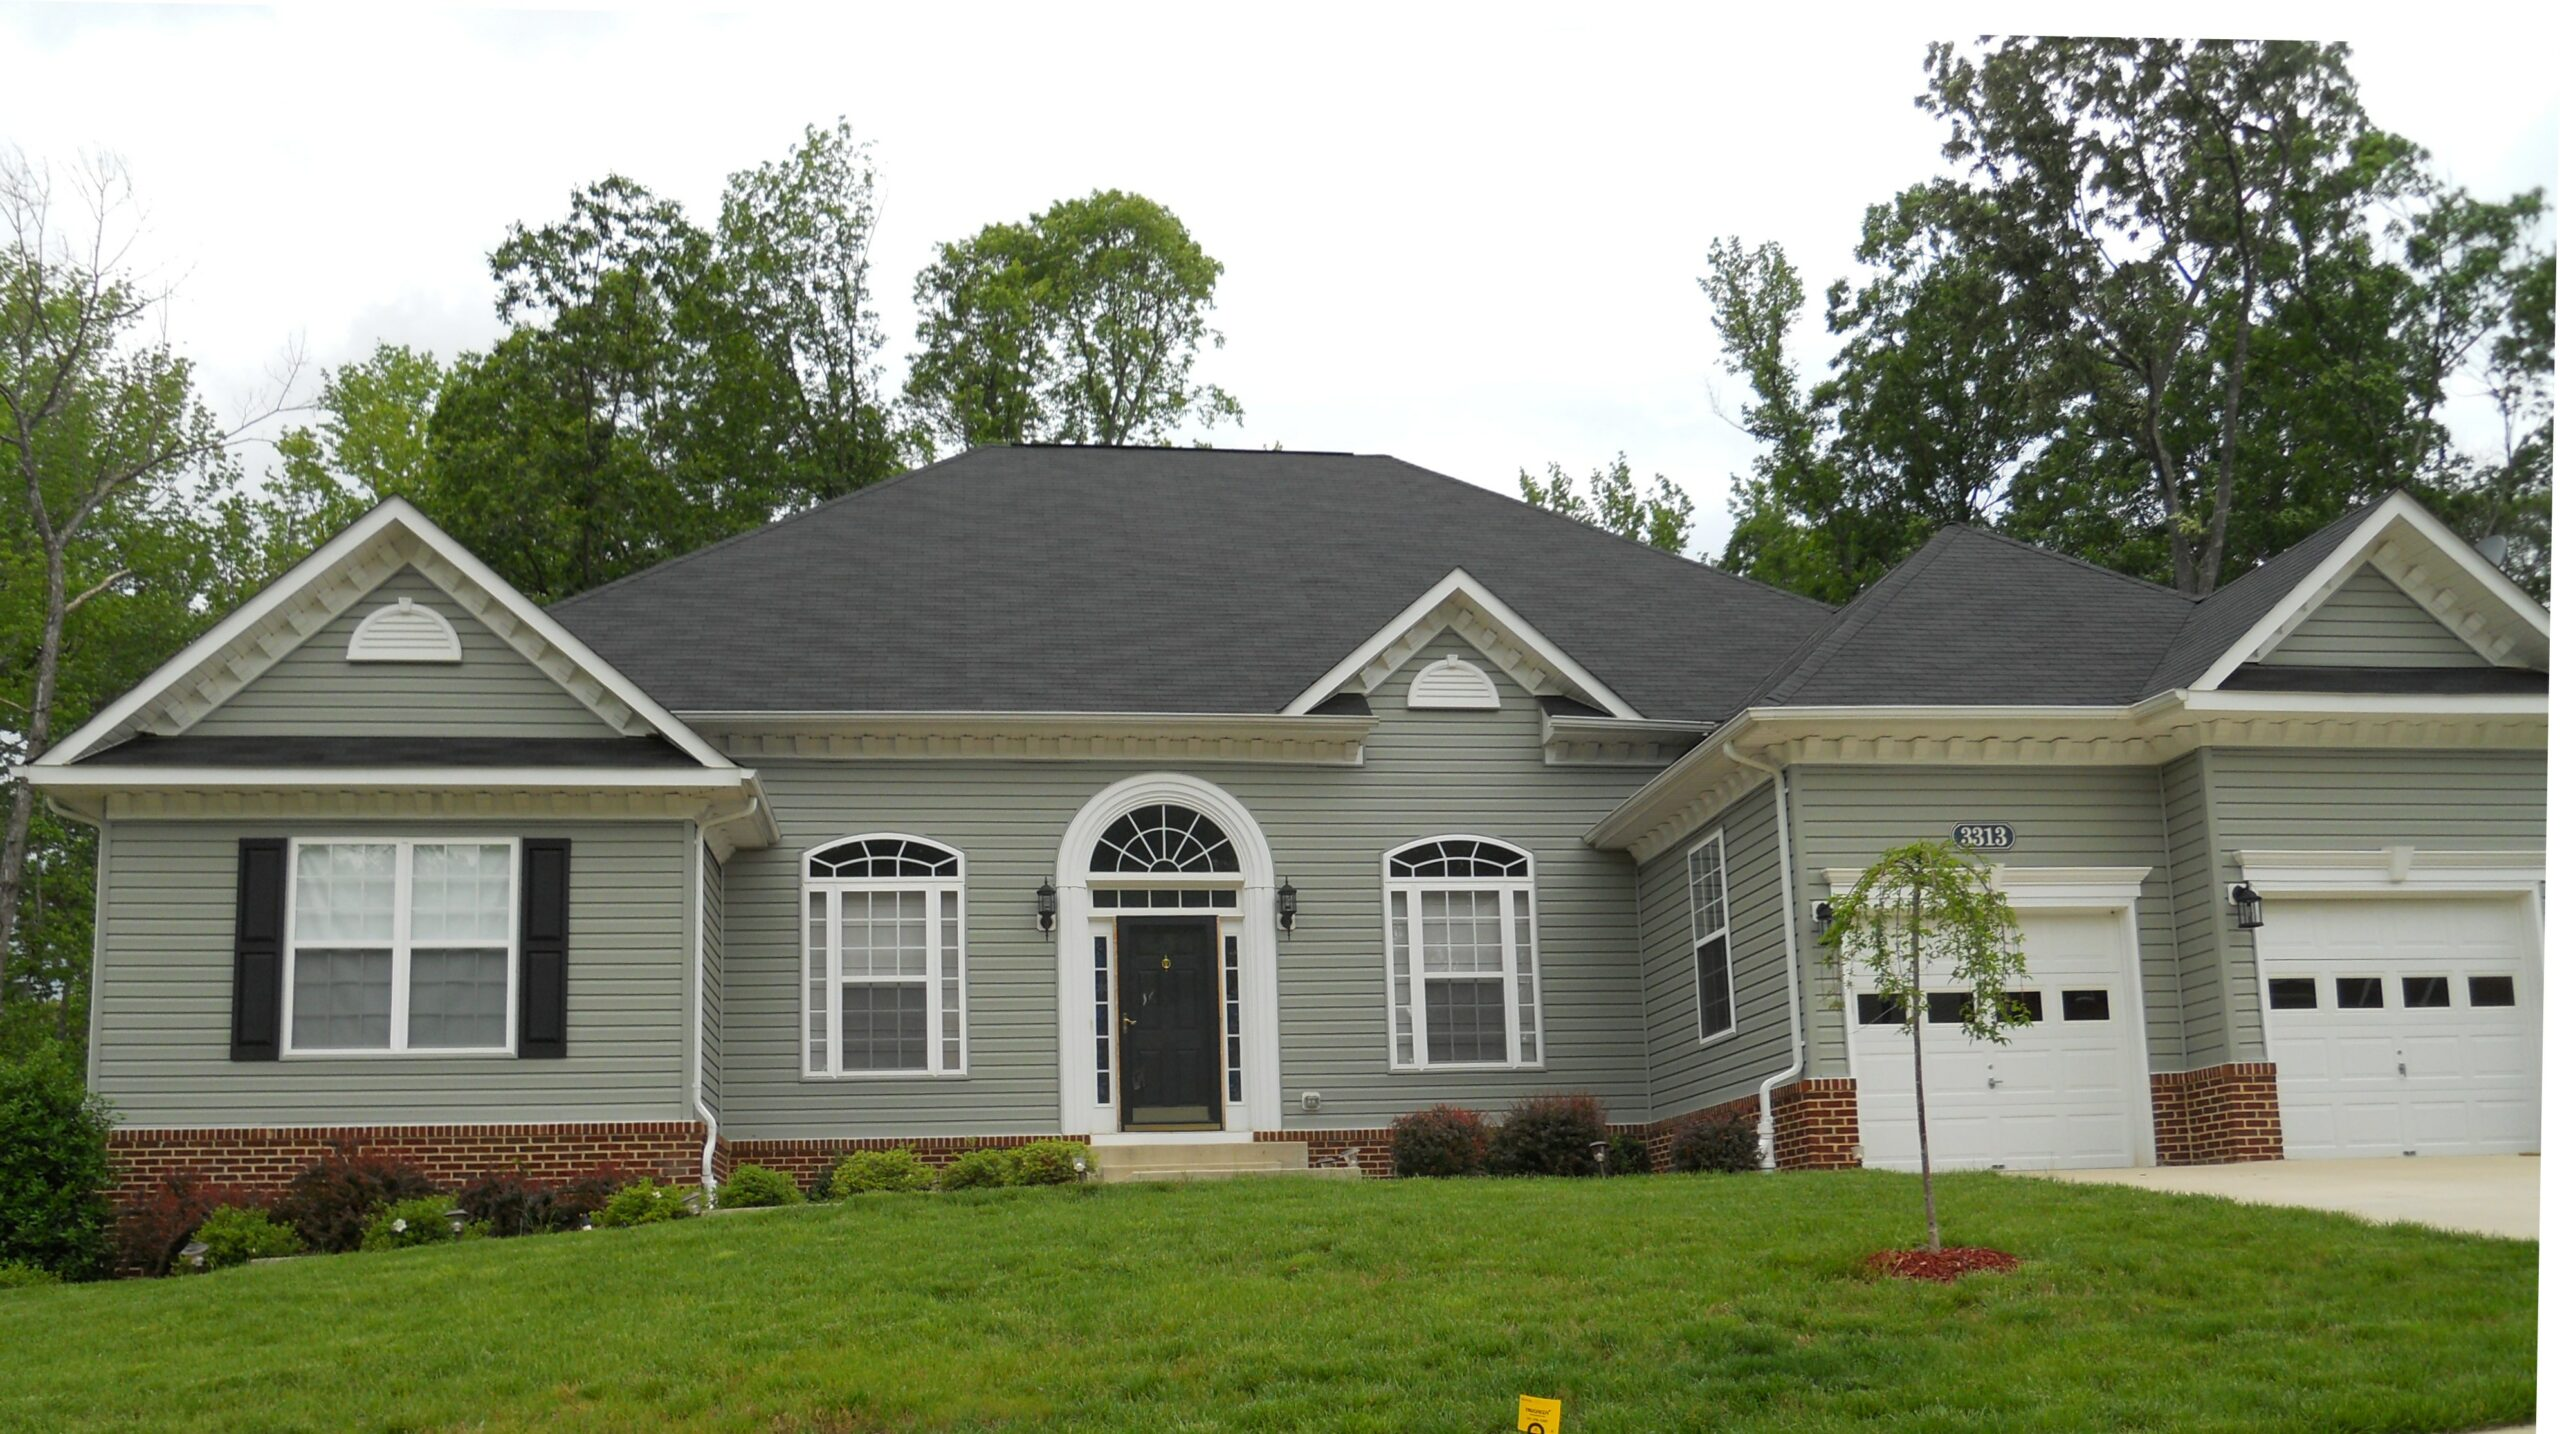 Ranch Style Single Family Homes For Sale In Fayetteville Ga